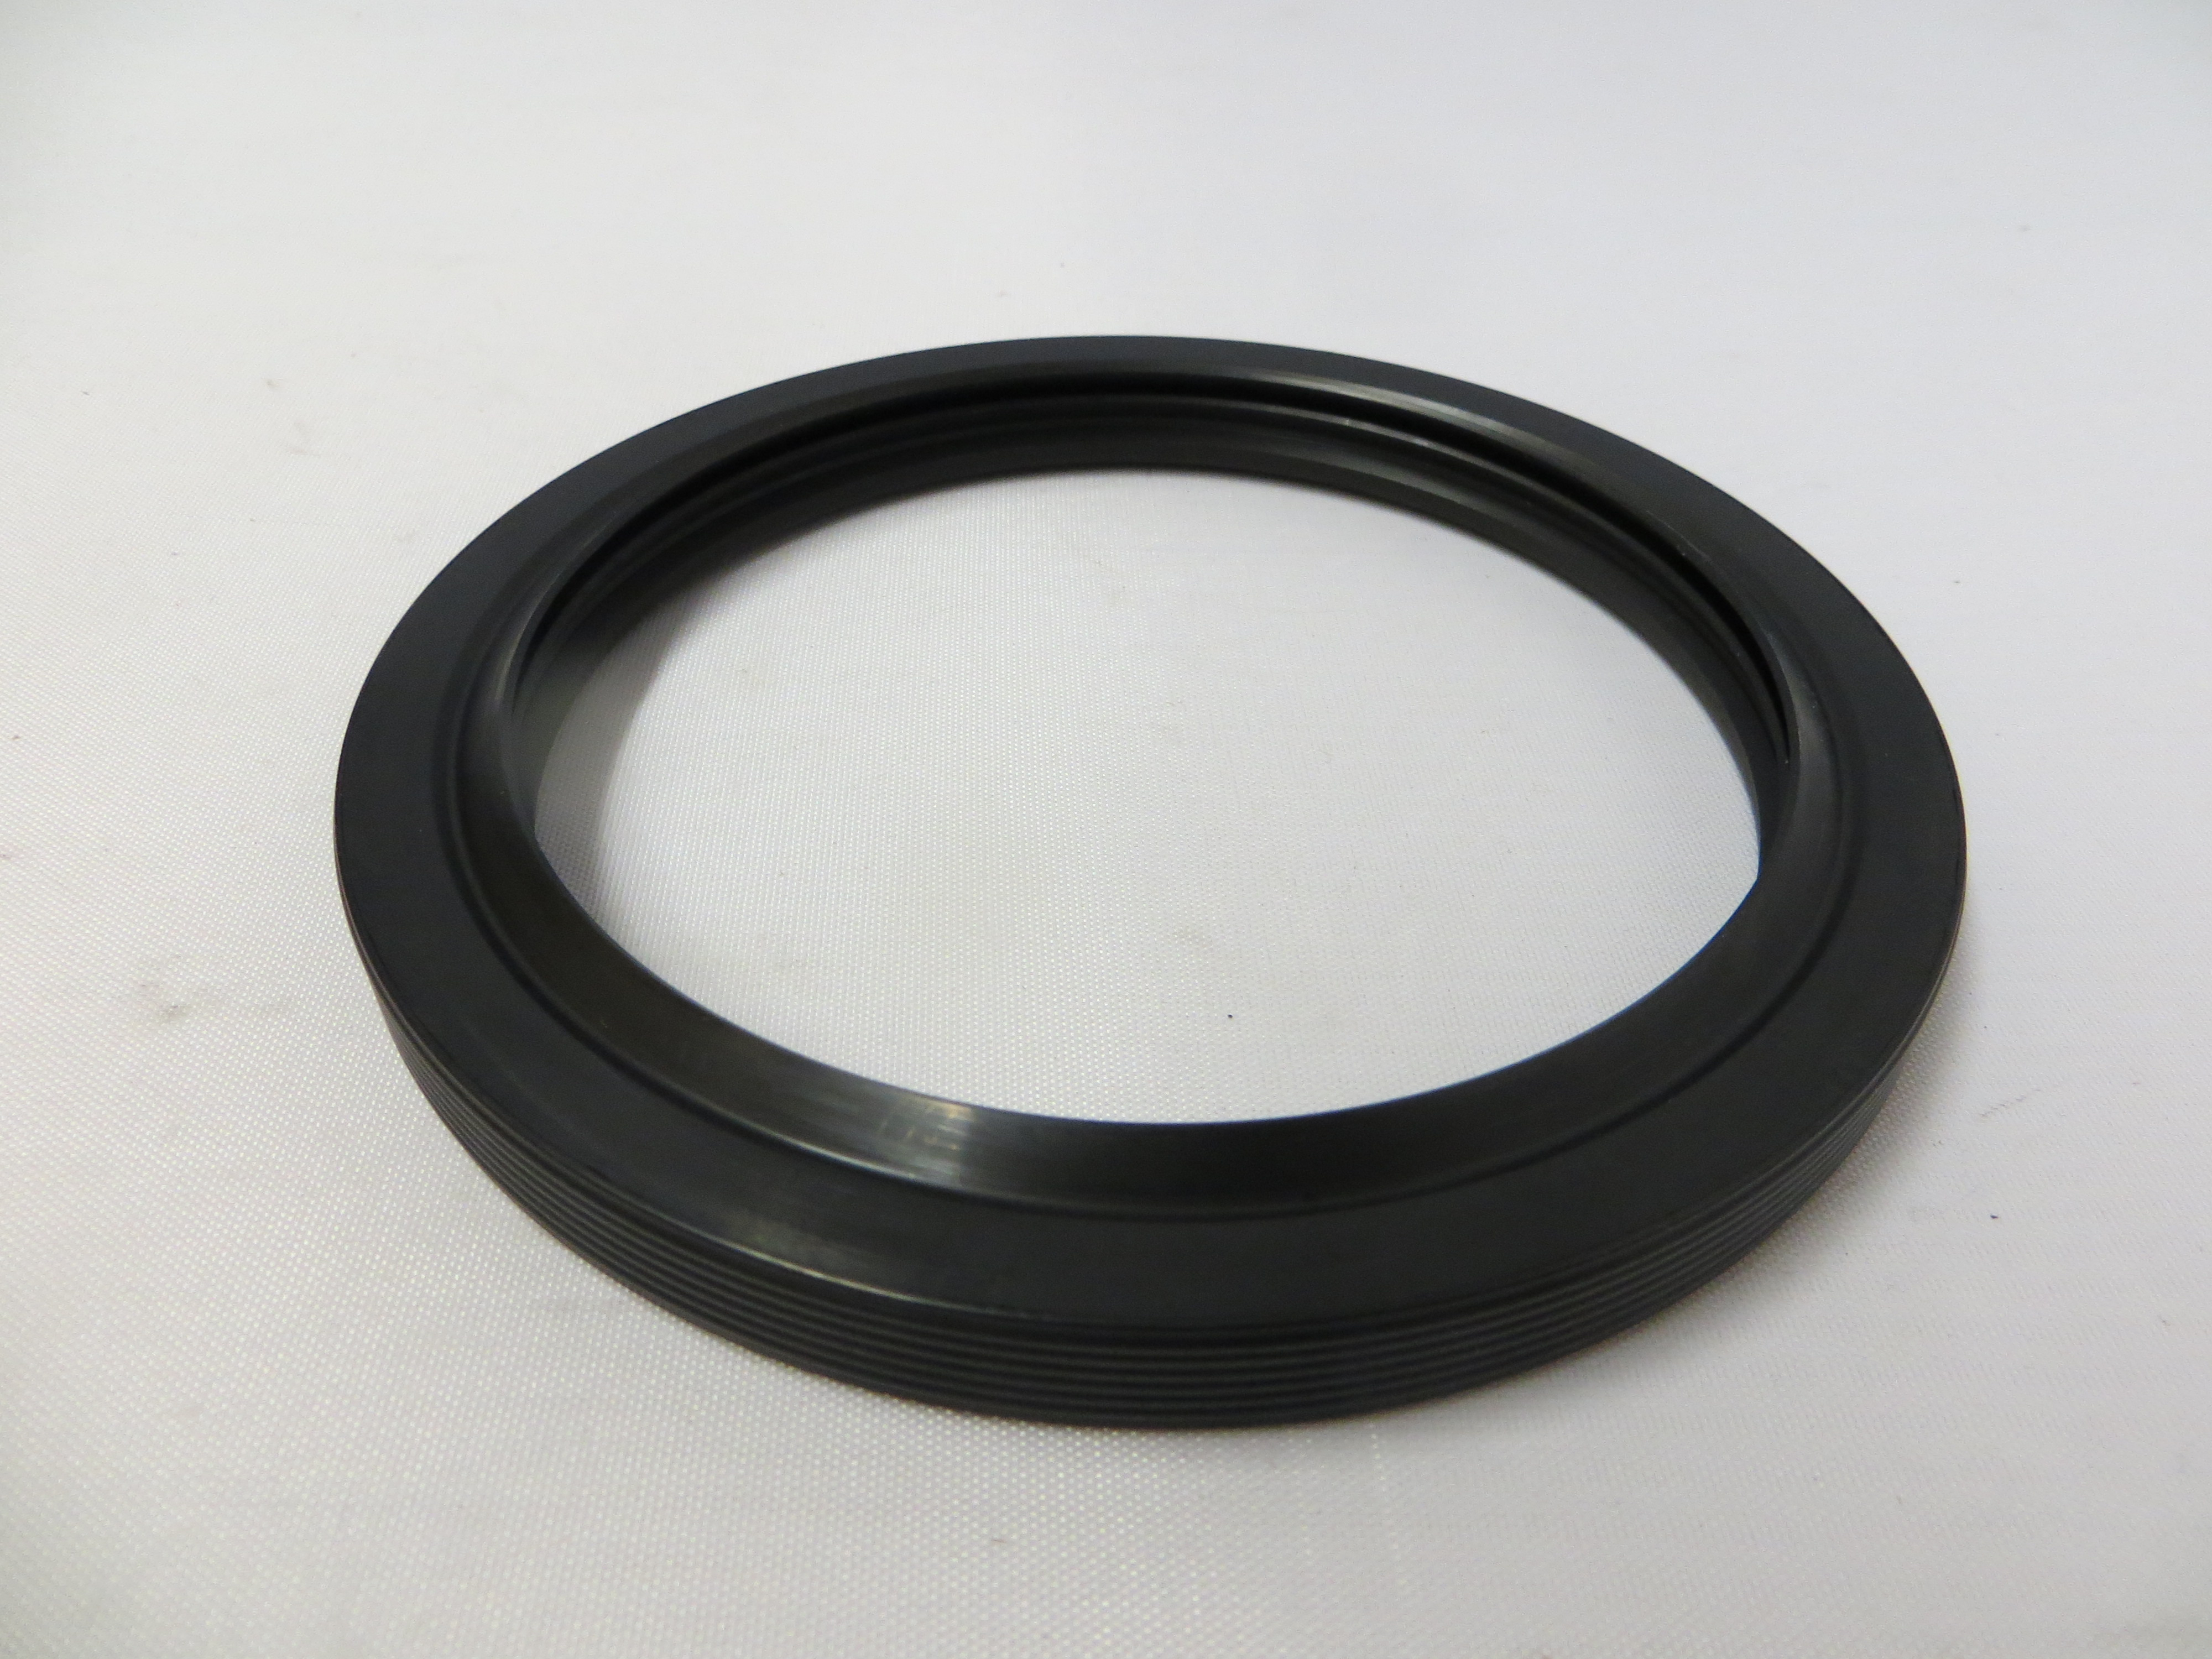 F8203805 - Triple Lip Radial Seal 105X130MM